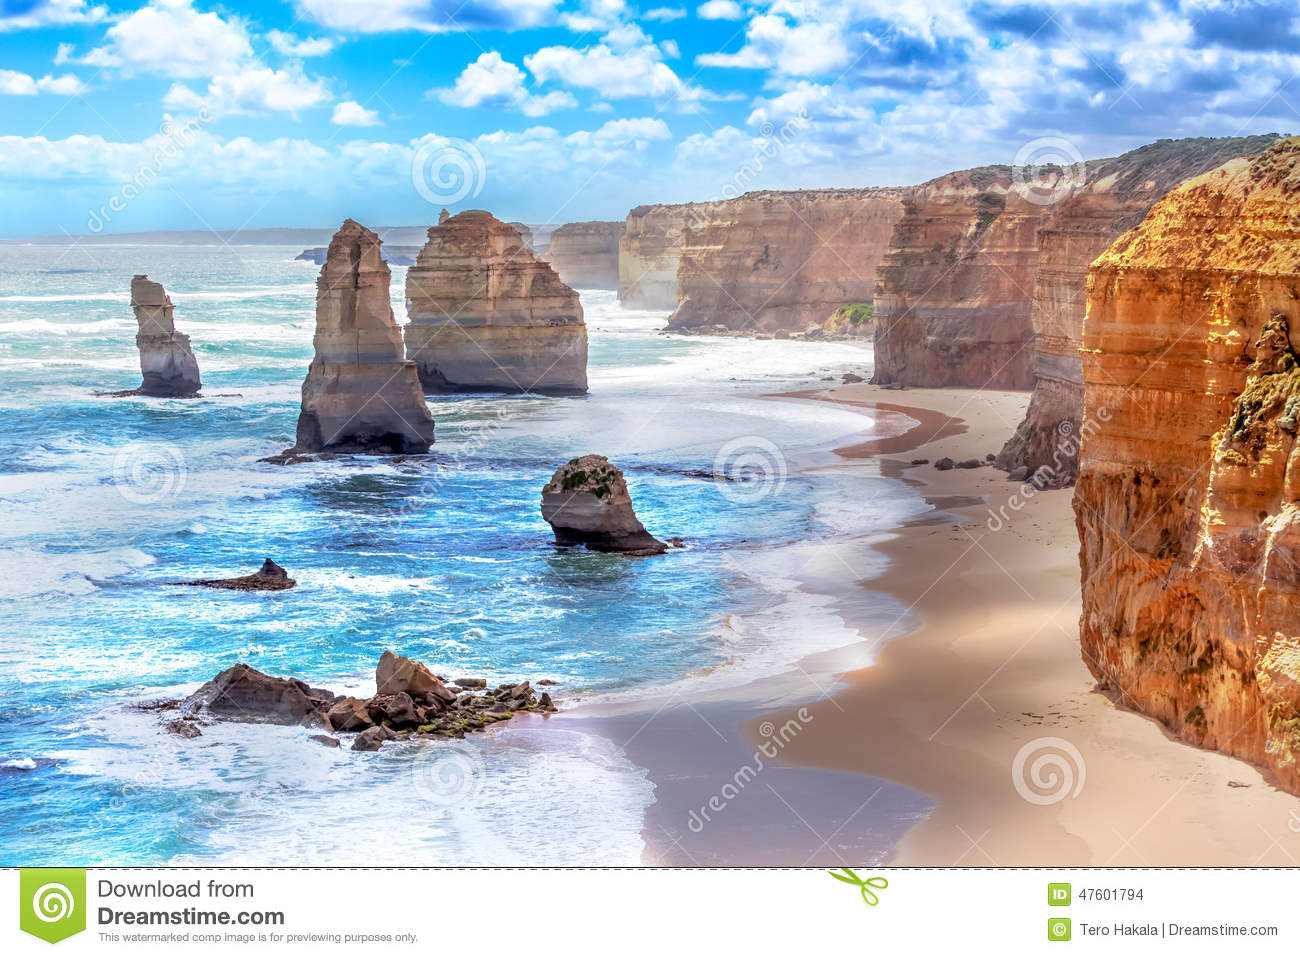 Download Twelve Apostles Along The Great Ocean Road In Australia Stock Photo - Image of horizontal, natural: 47601794